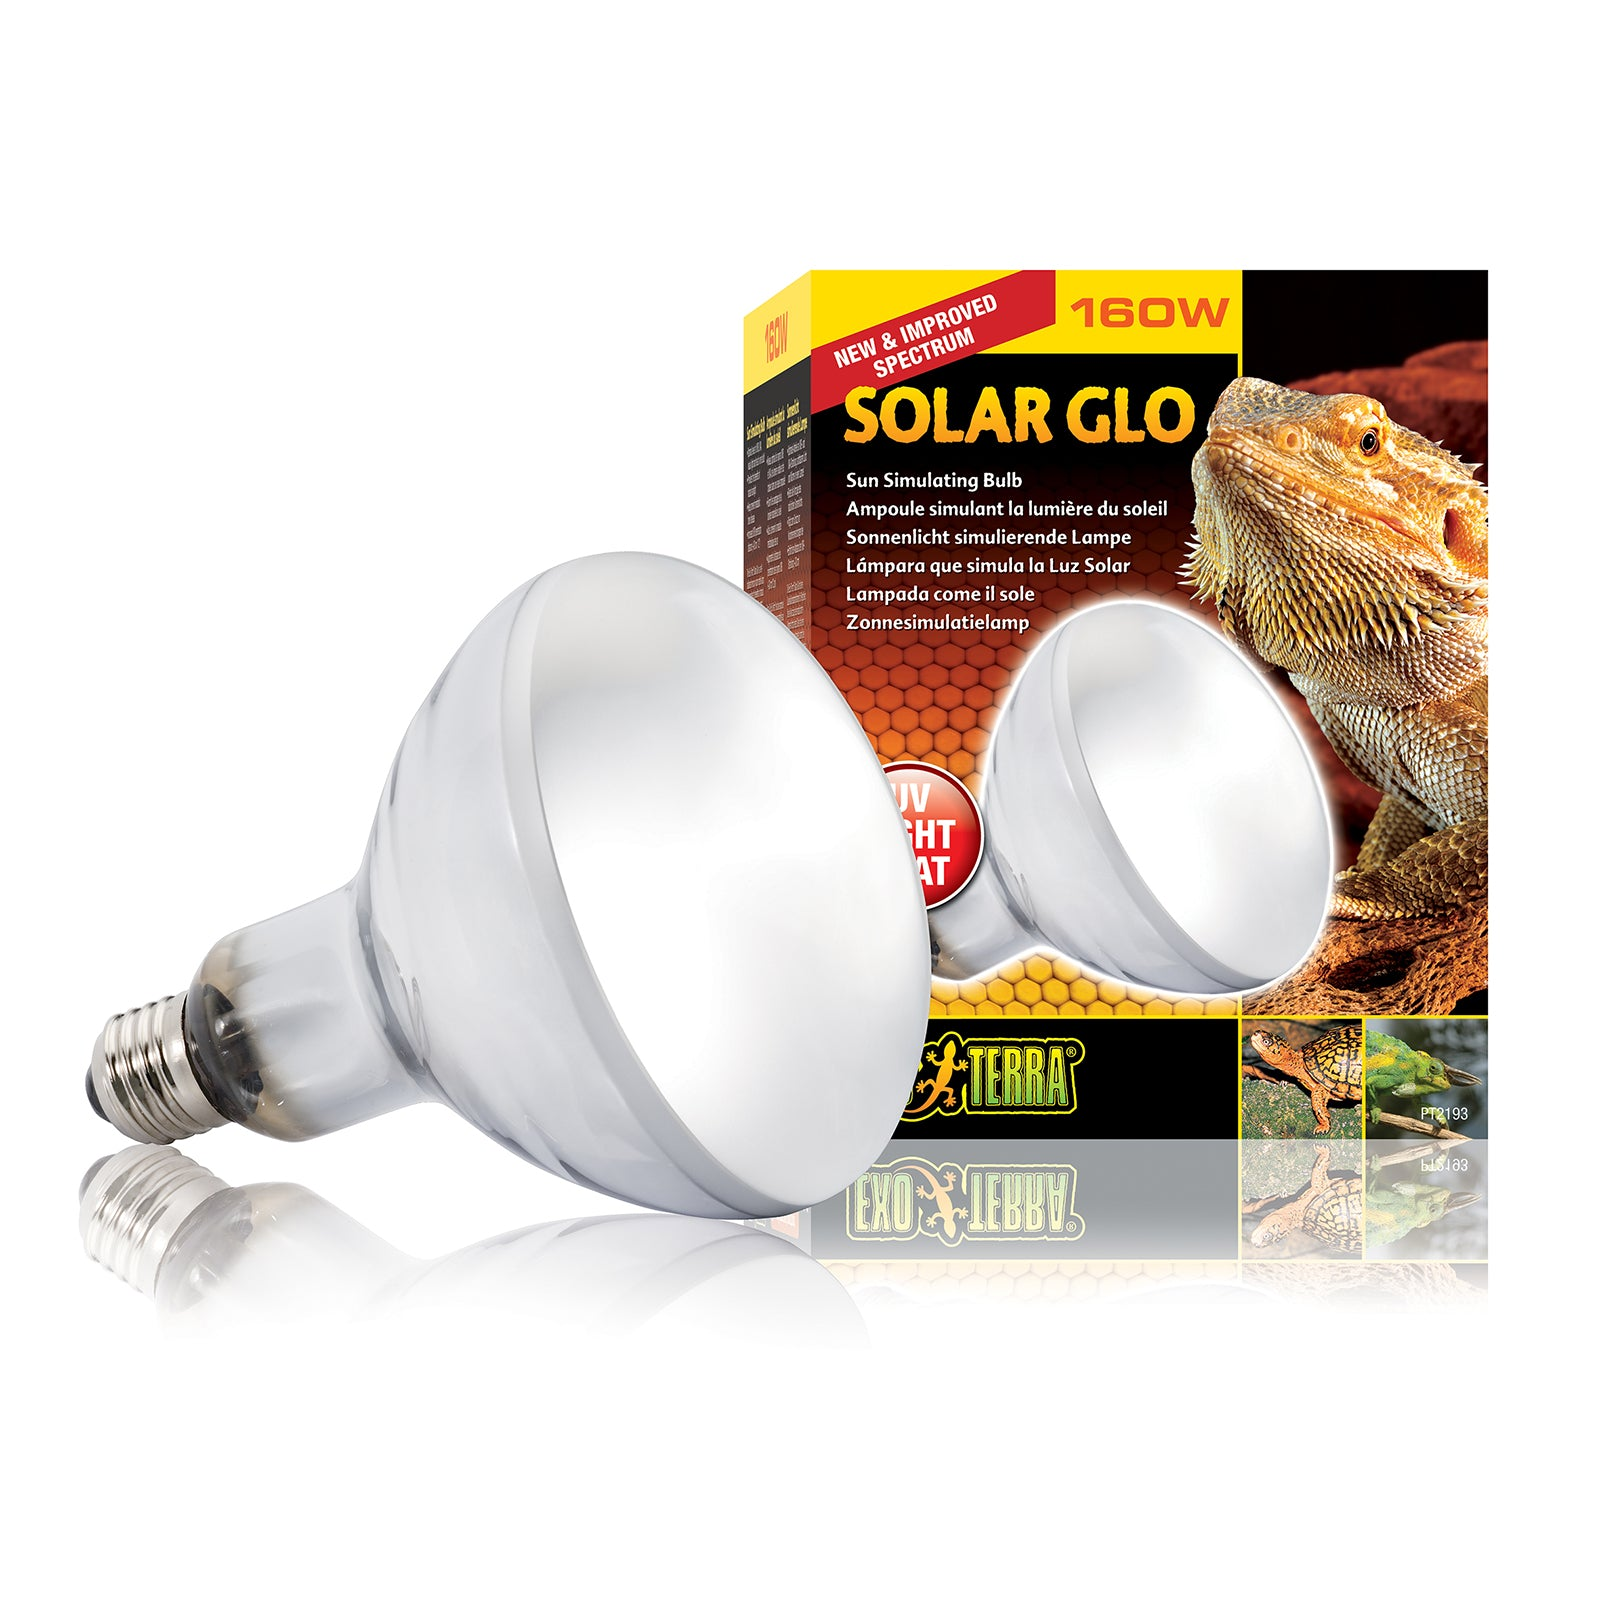 Exo Terra Solar Glo UV Heat Lamp